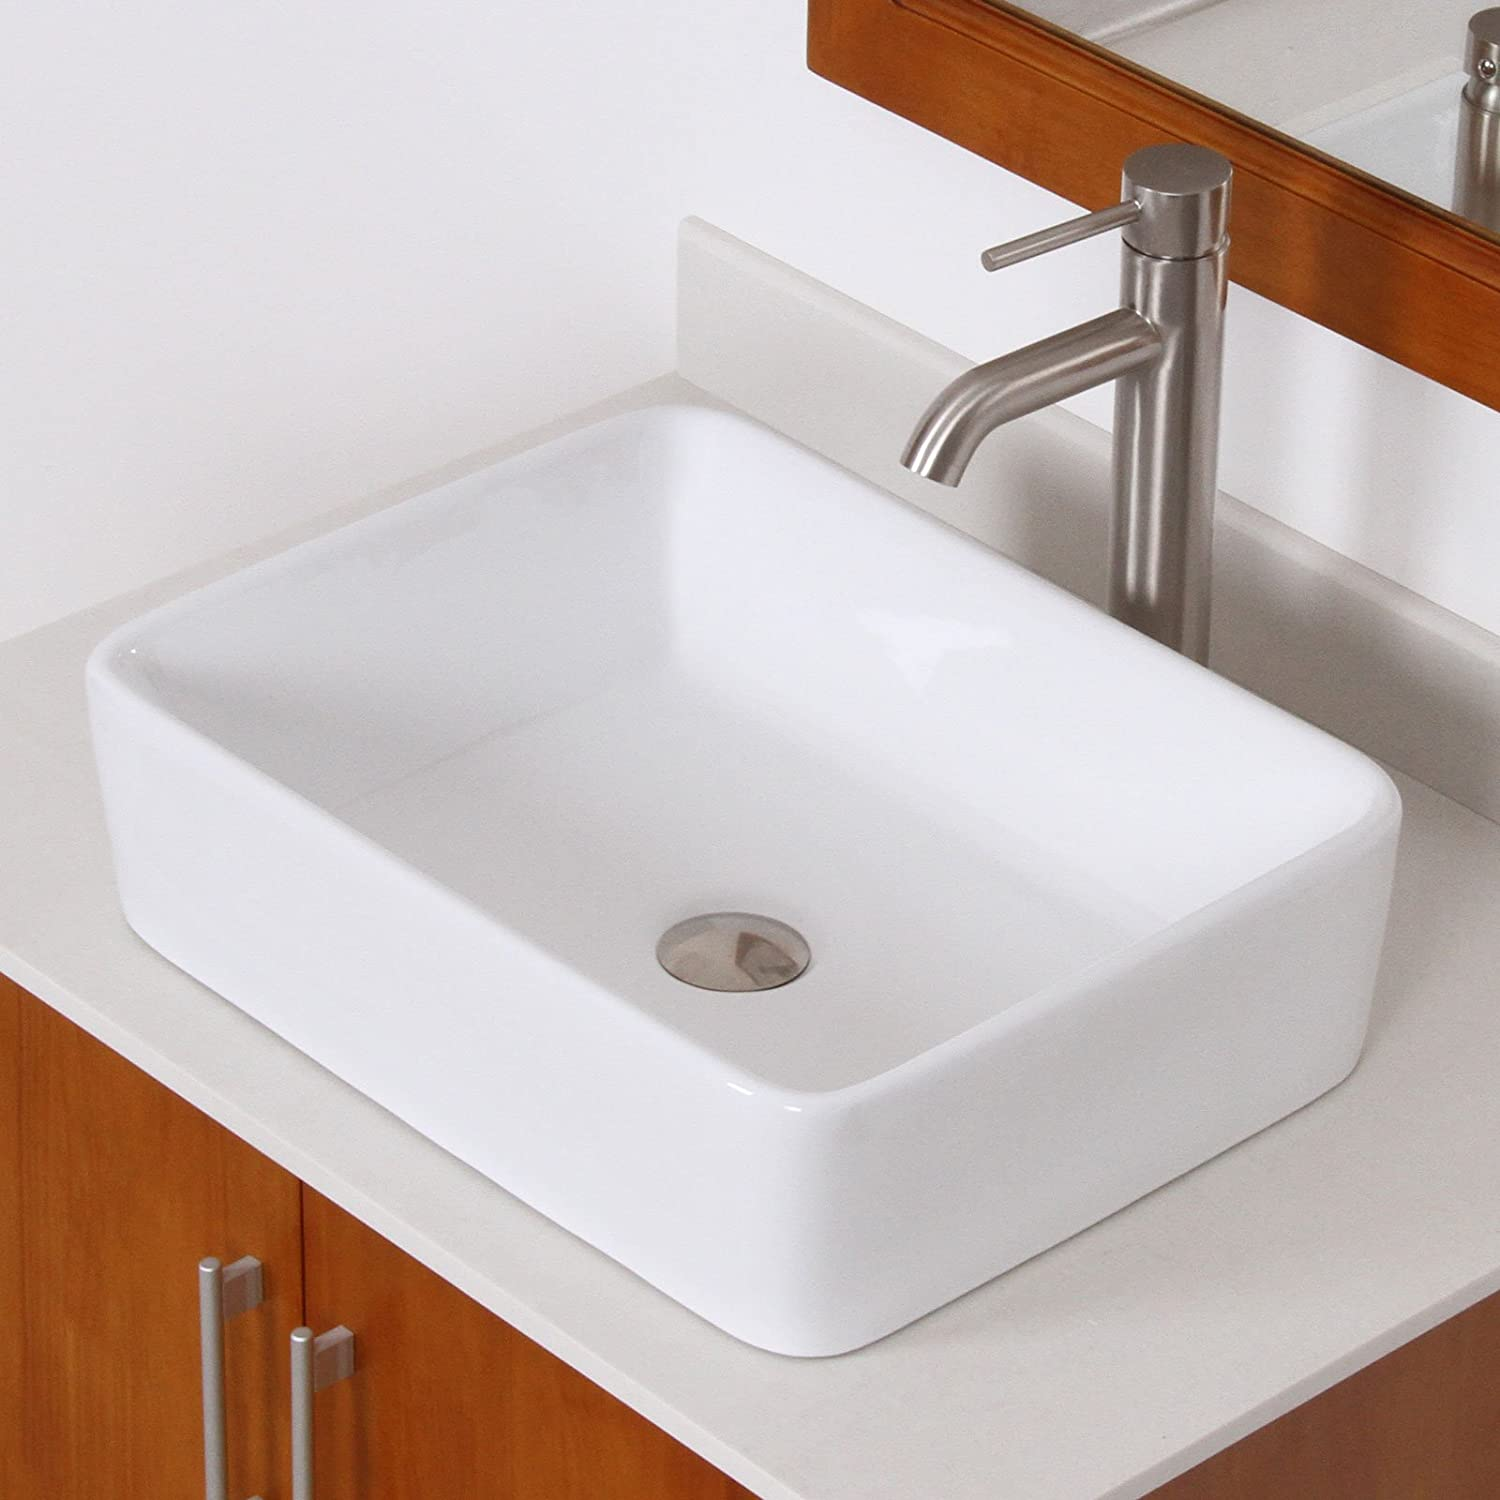 gs crafted sinks vessel bathroom artisan picture sink round glass bath of bathrooms mount gallery